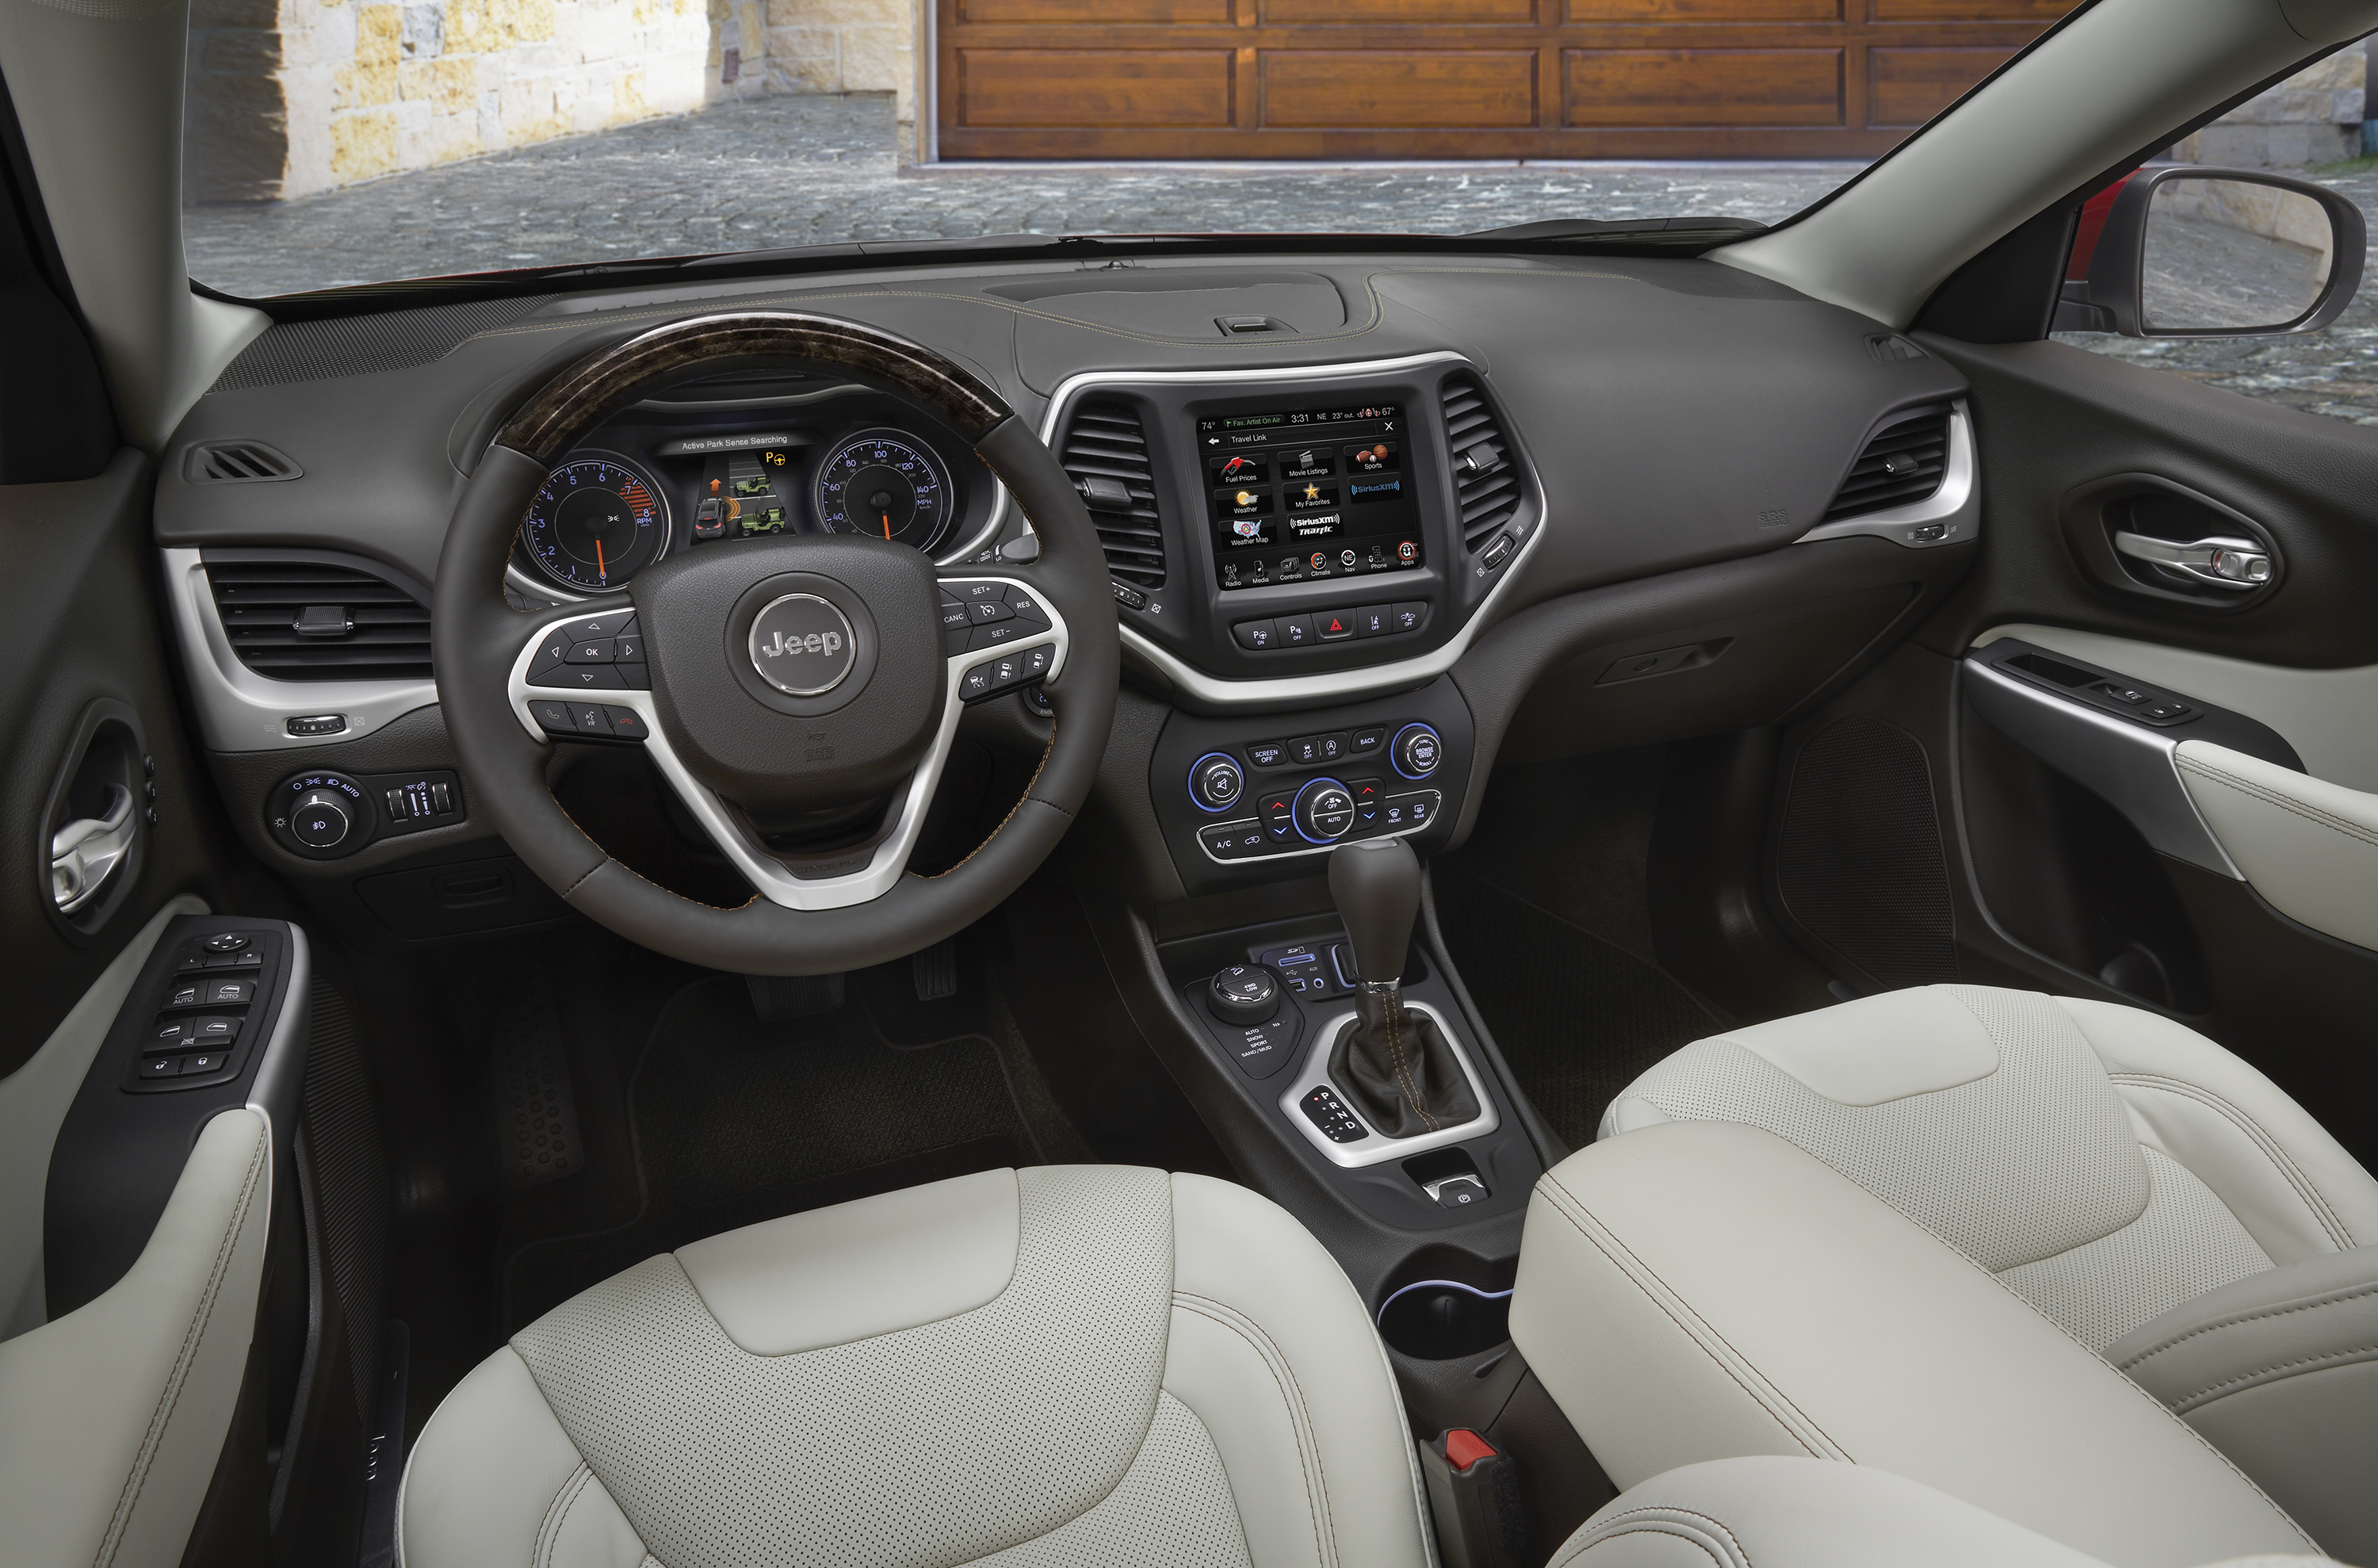 The layout of the controls in the 2018 Jeep Cherokee is logical and the look is attractive. But the seats leave a bit to be desired.